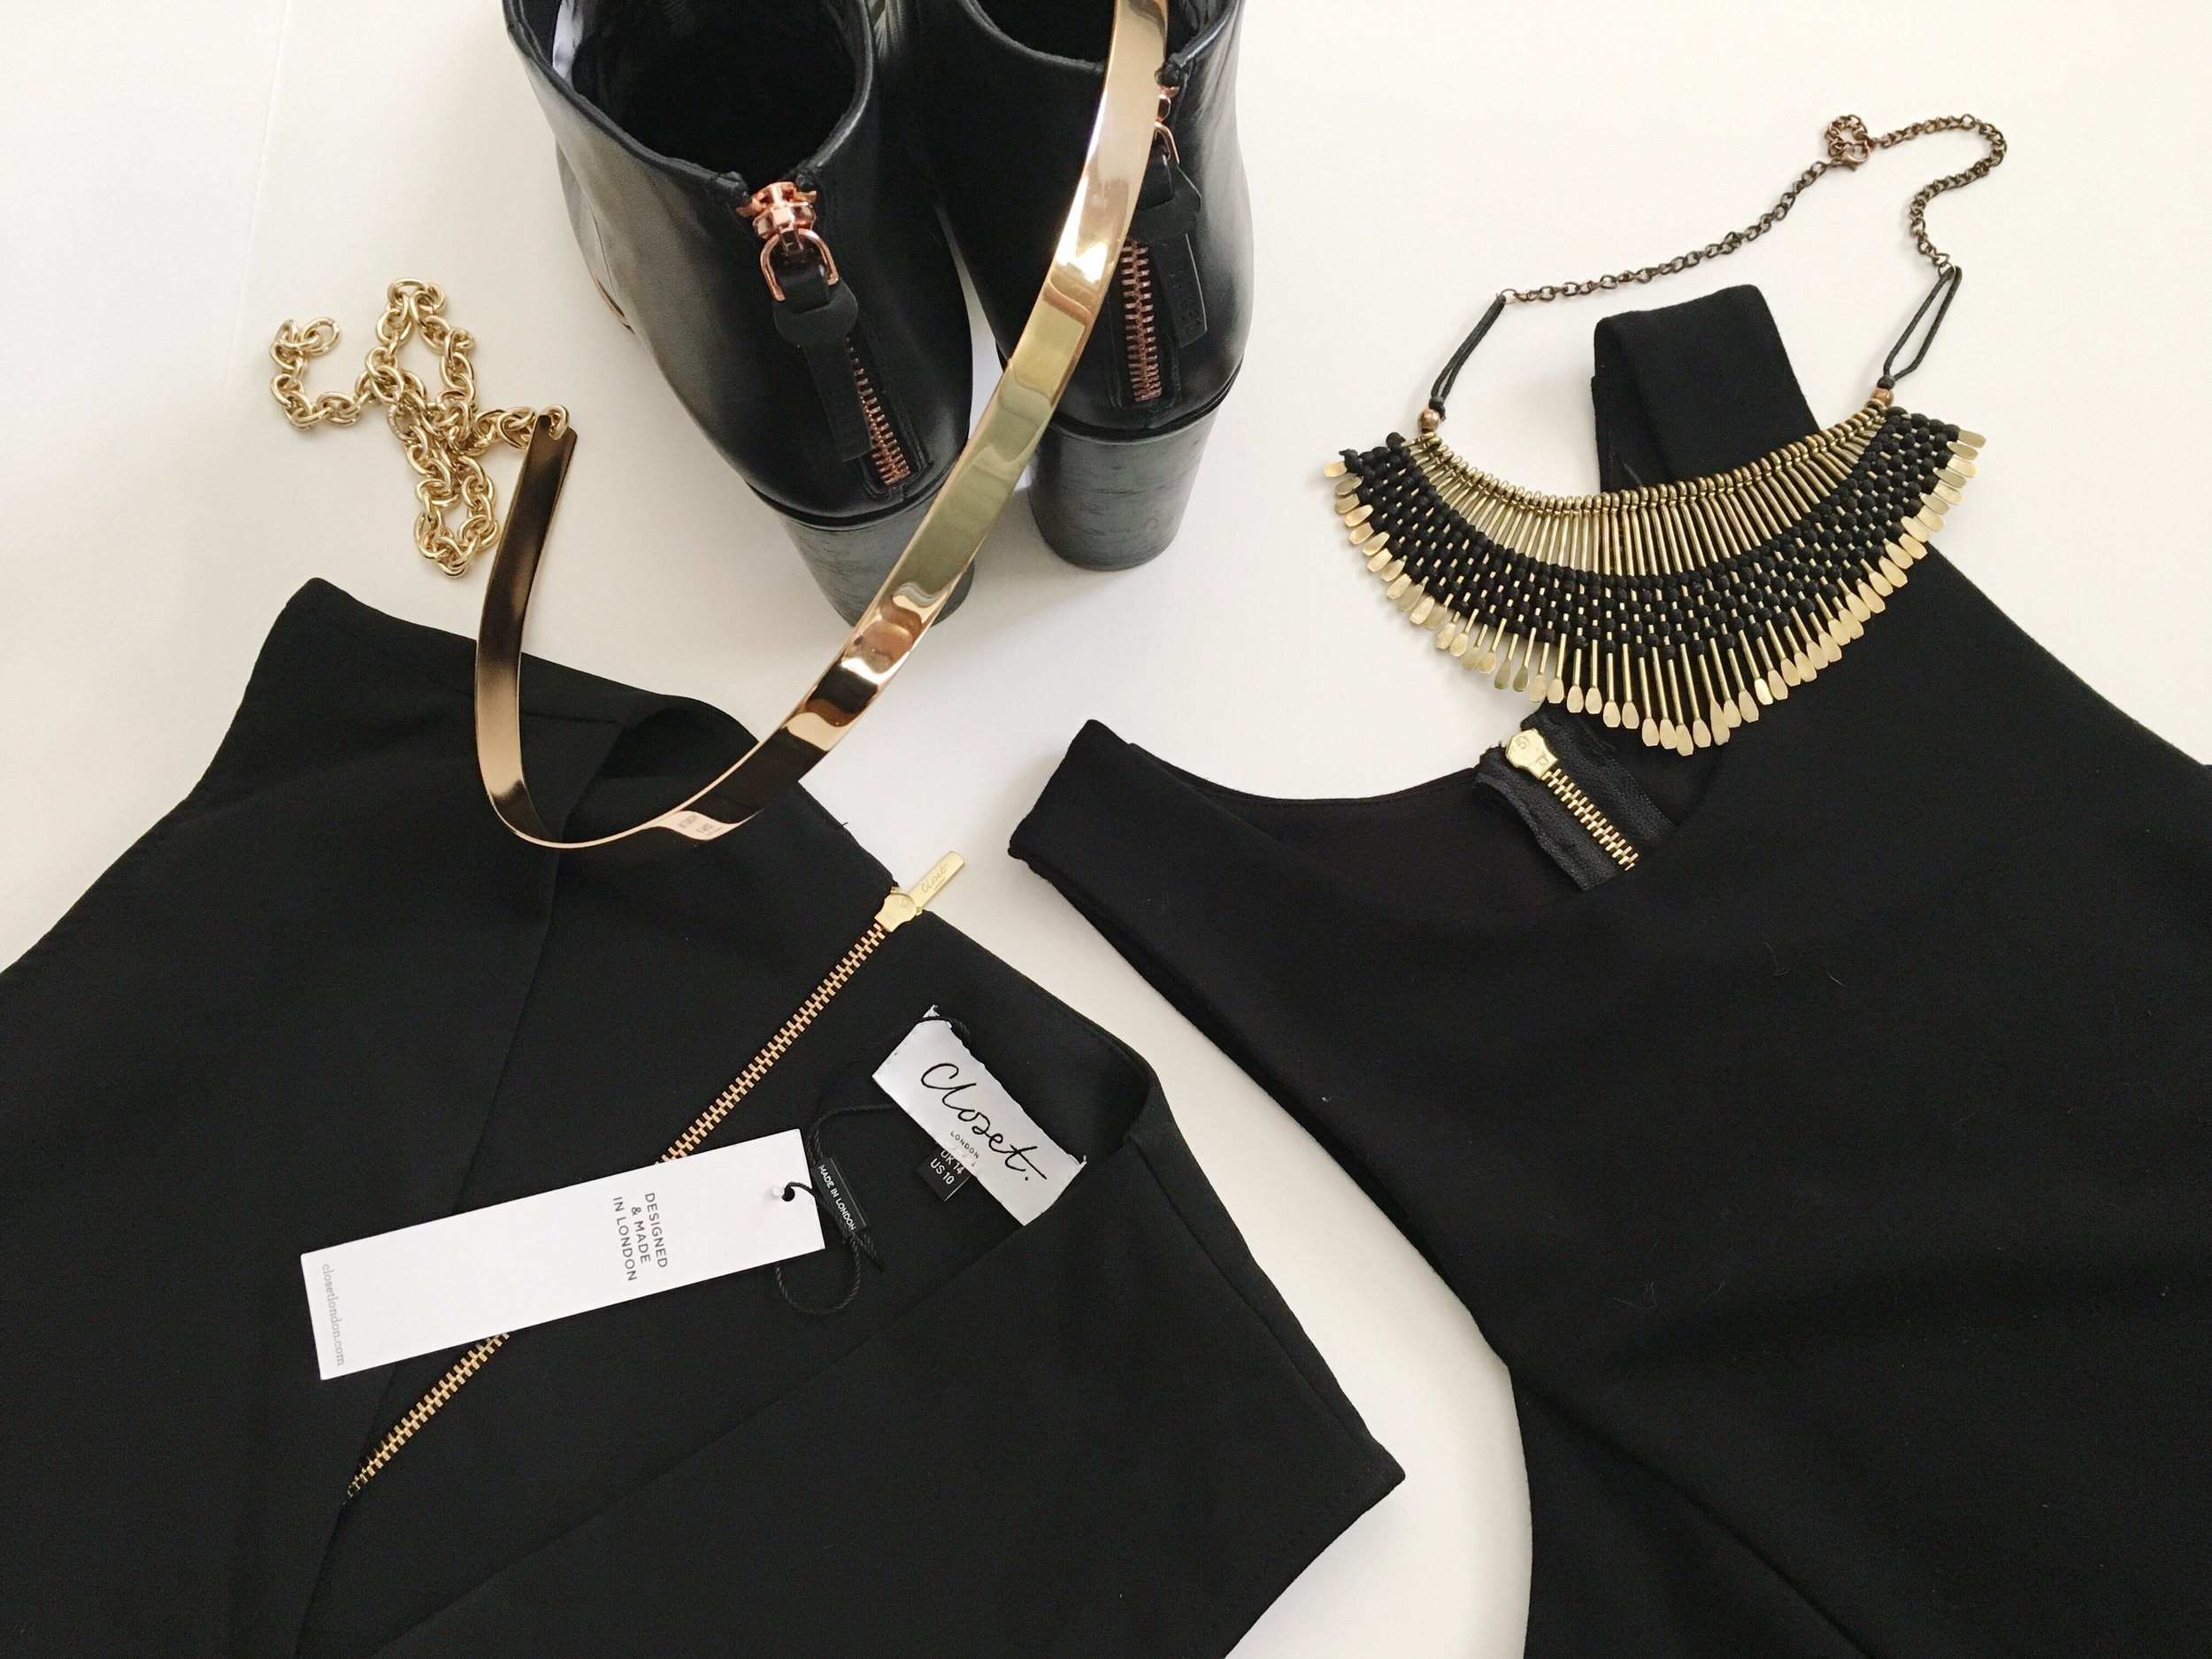 Prepping my wardrobe for the day and evening events.